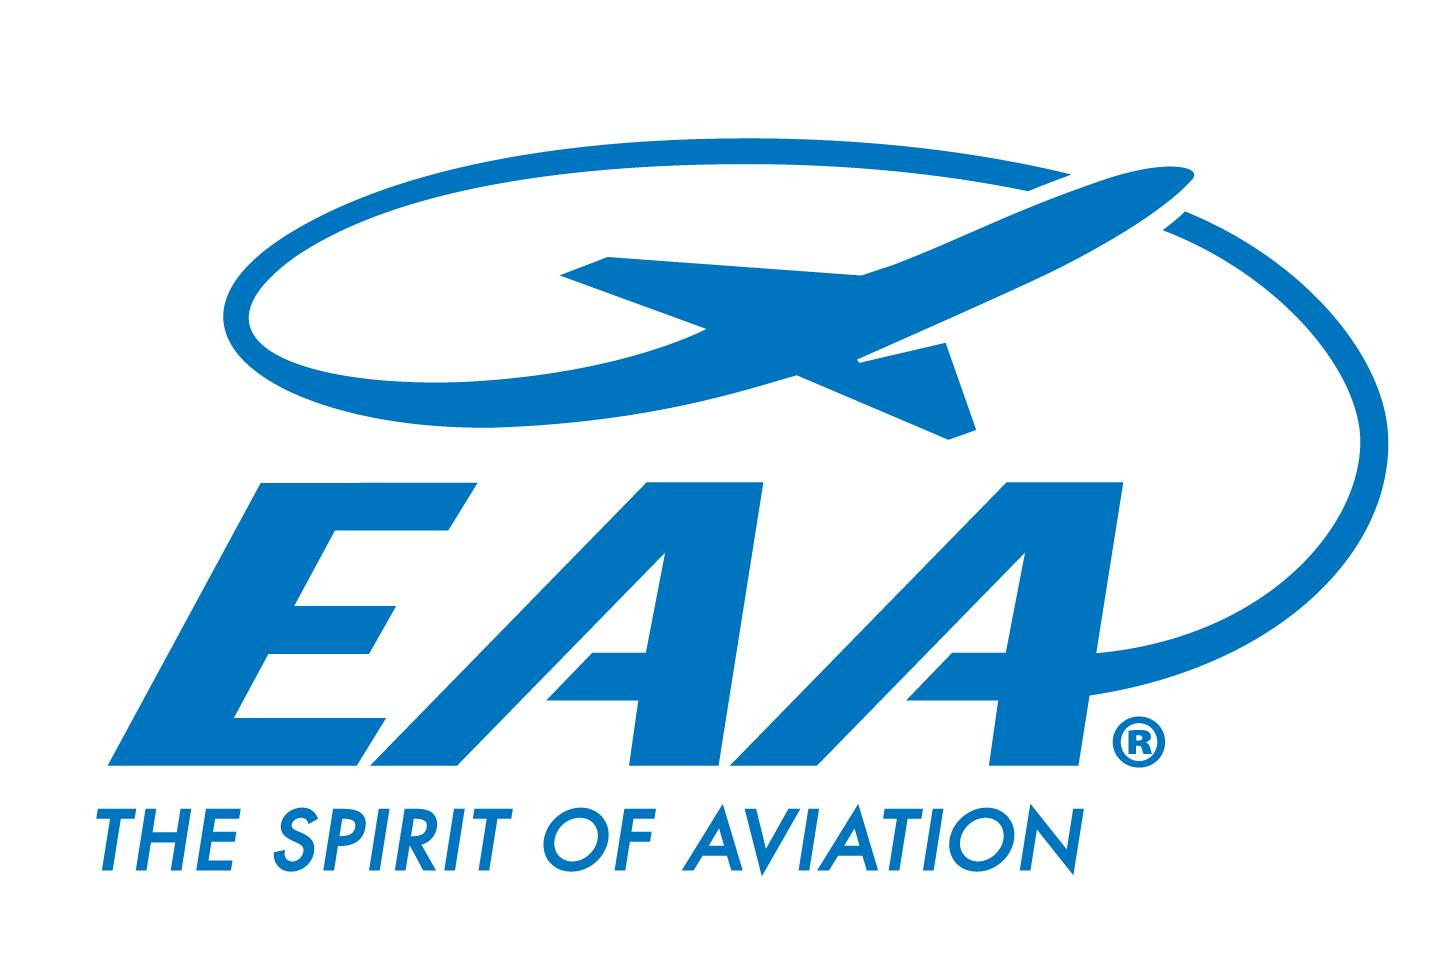 clipart library library Verified eaa logos highresolution. Vector aviation logo